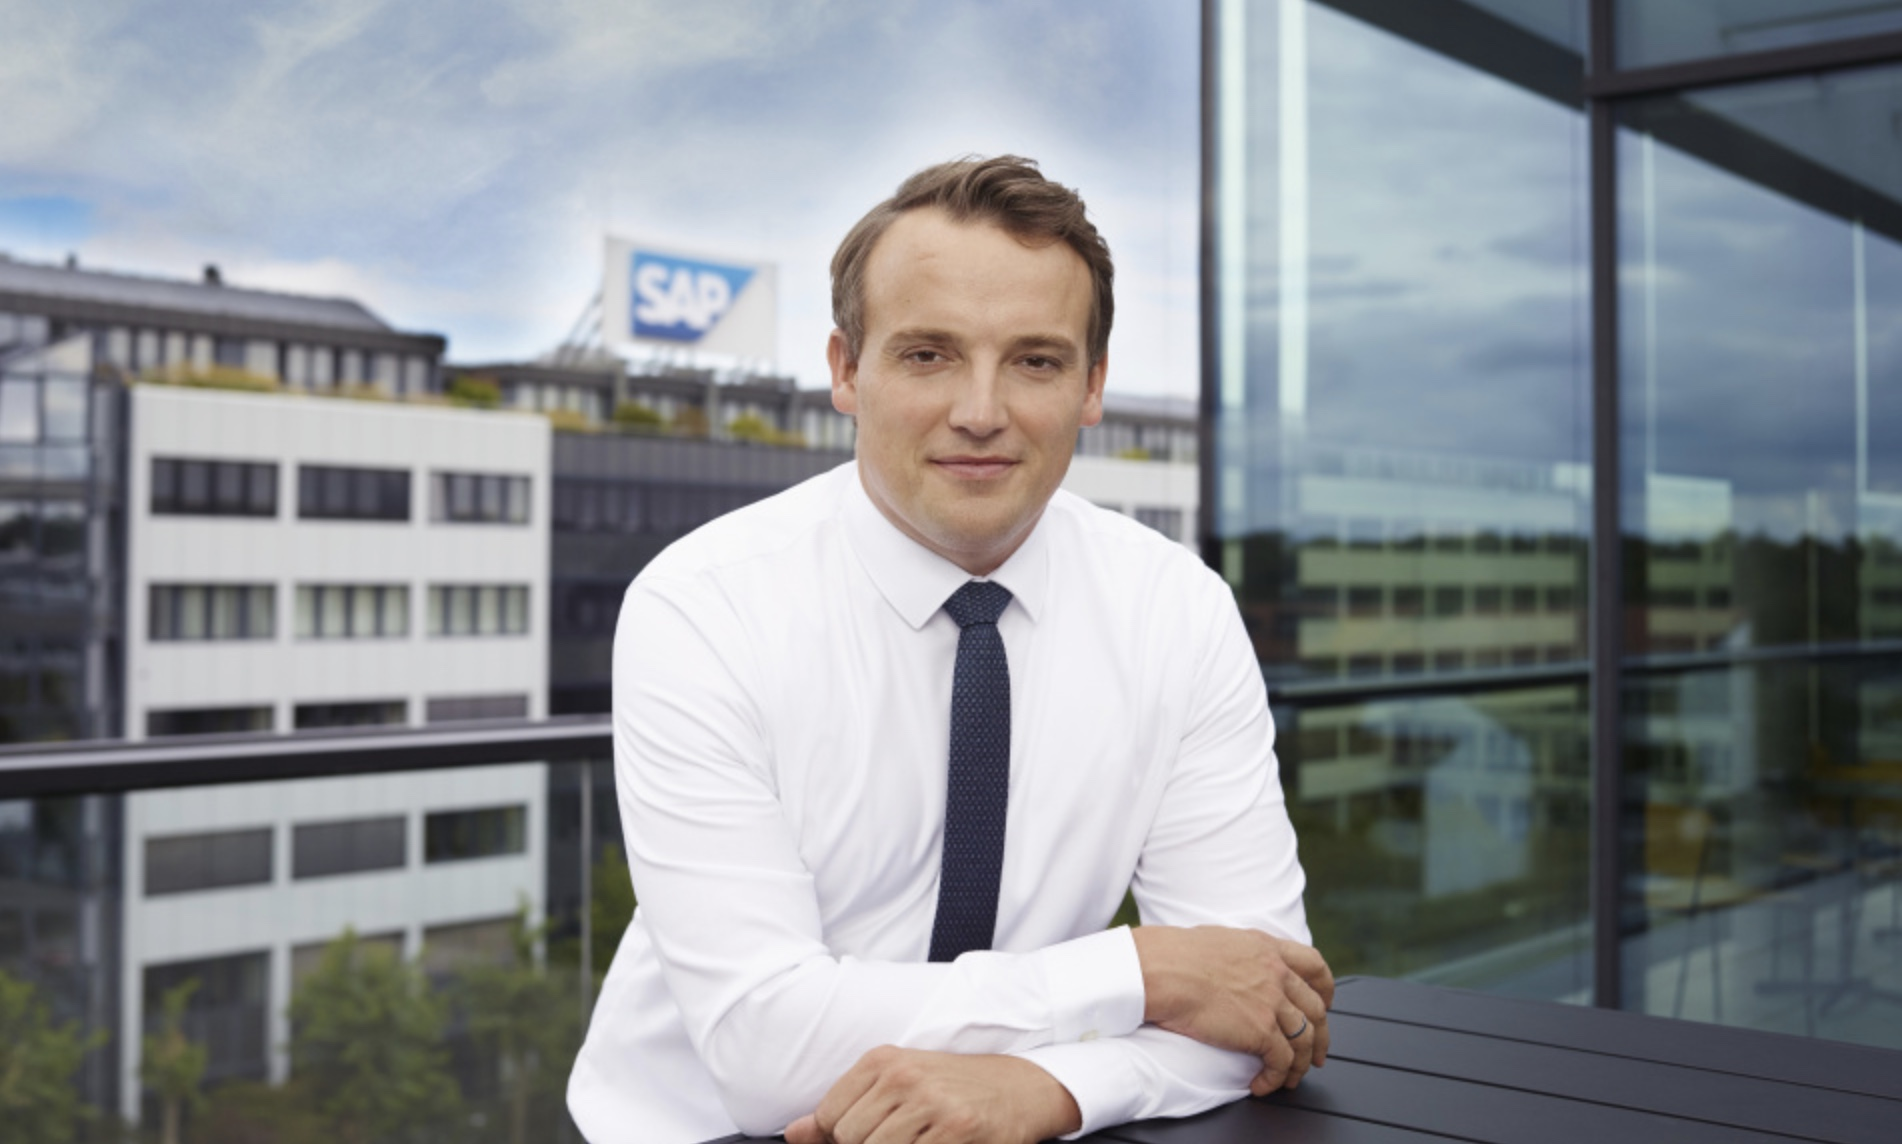 SAP CEO Christian Klein